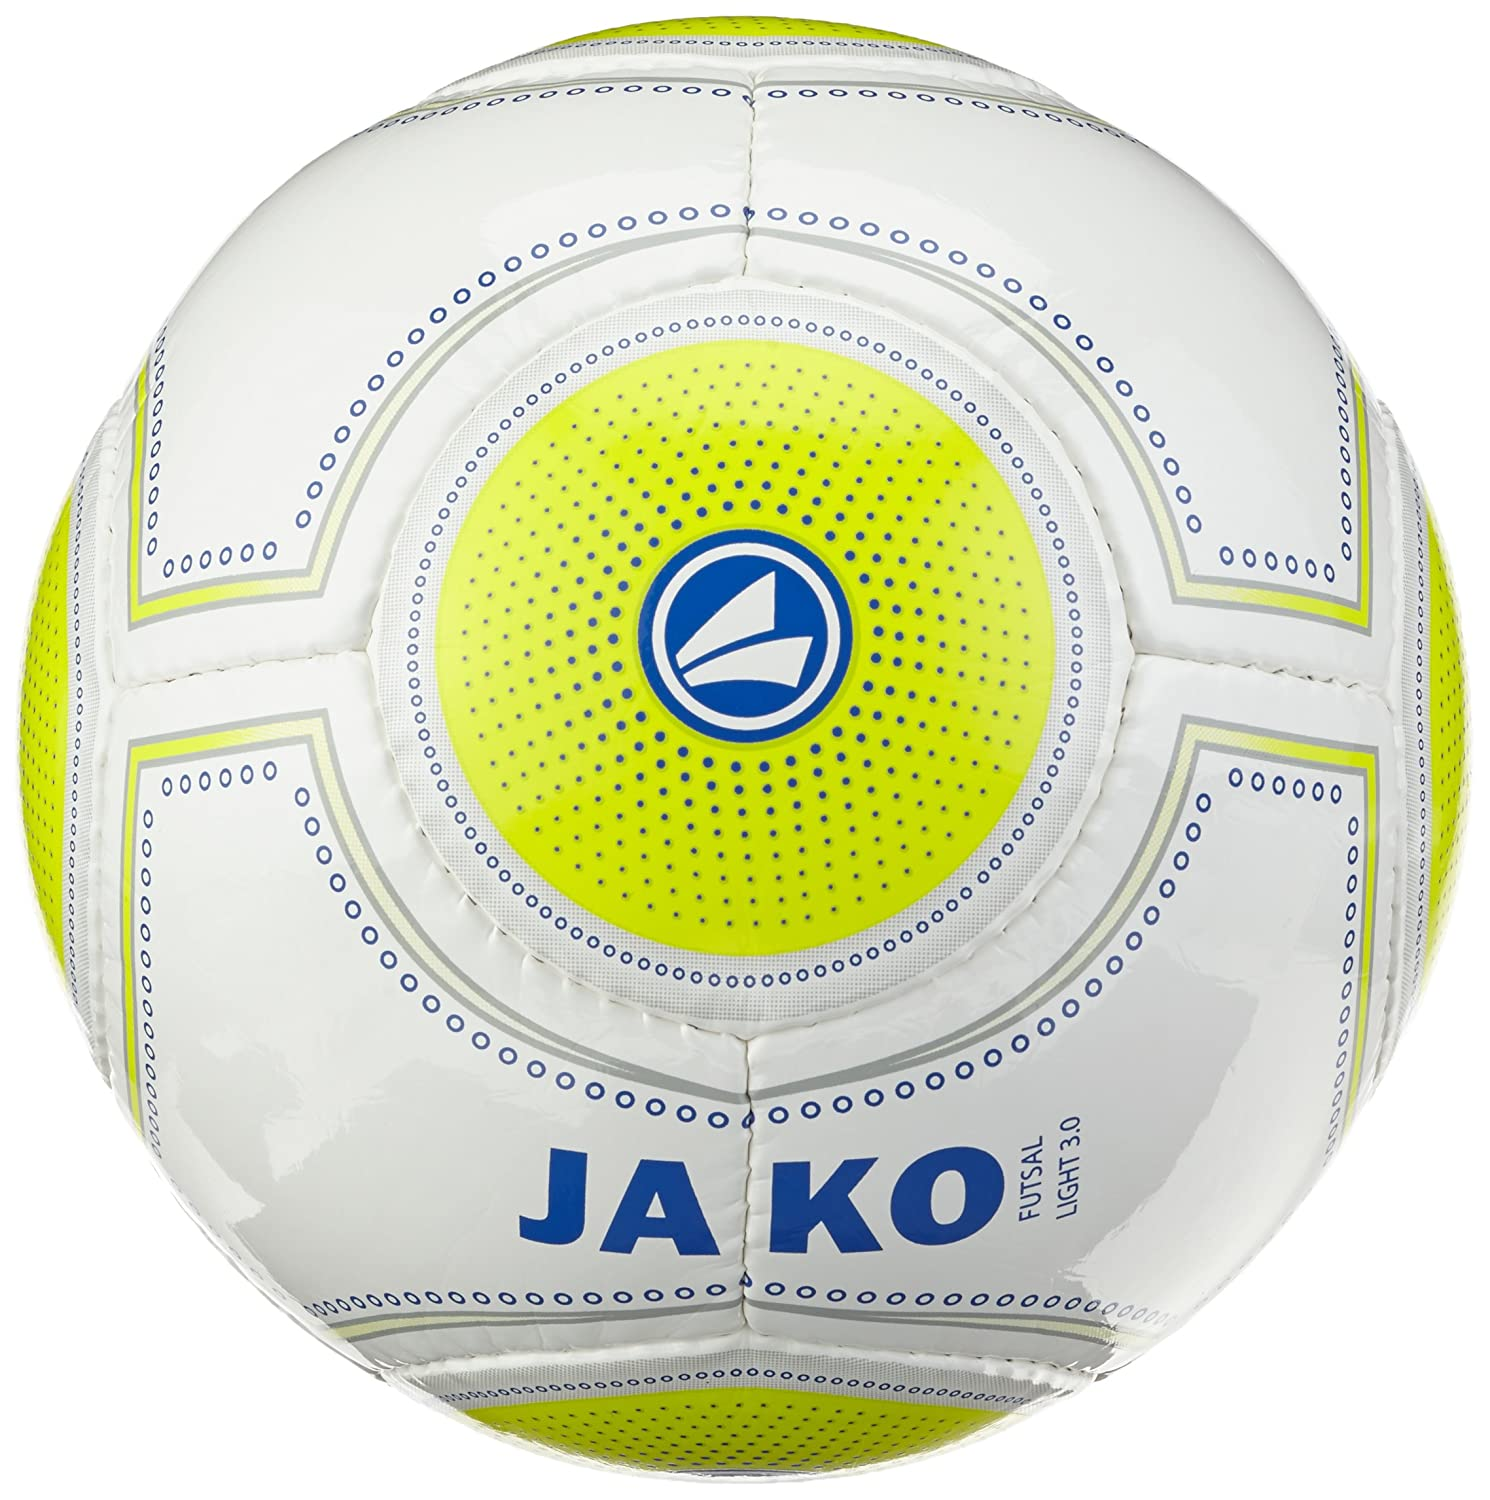 Jako Ballon de Football pour Foot en Salle Blanc/Jaune Light 3.0 Citron/Marine